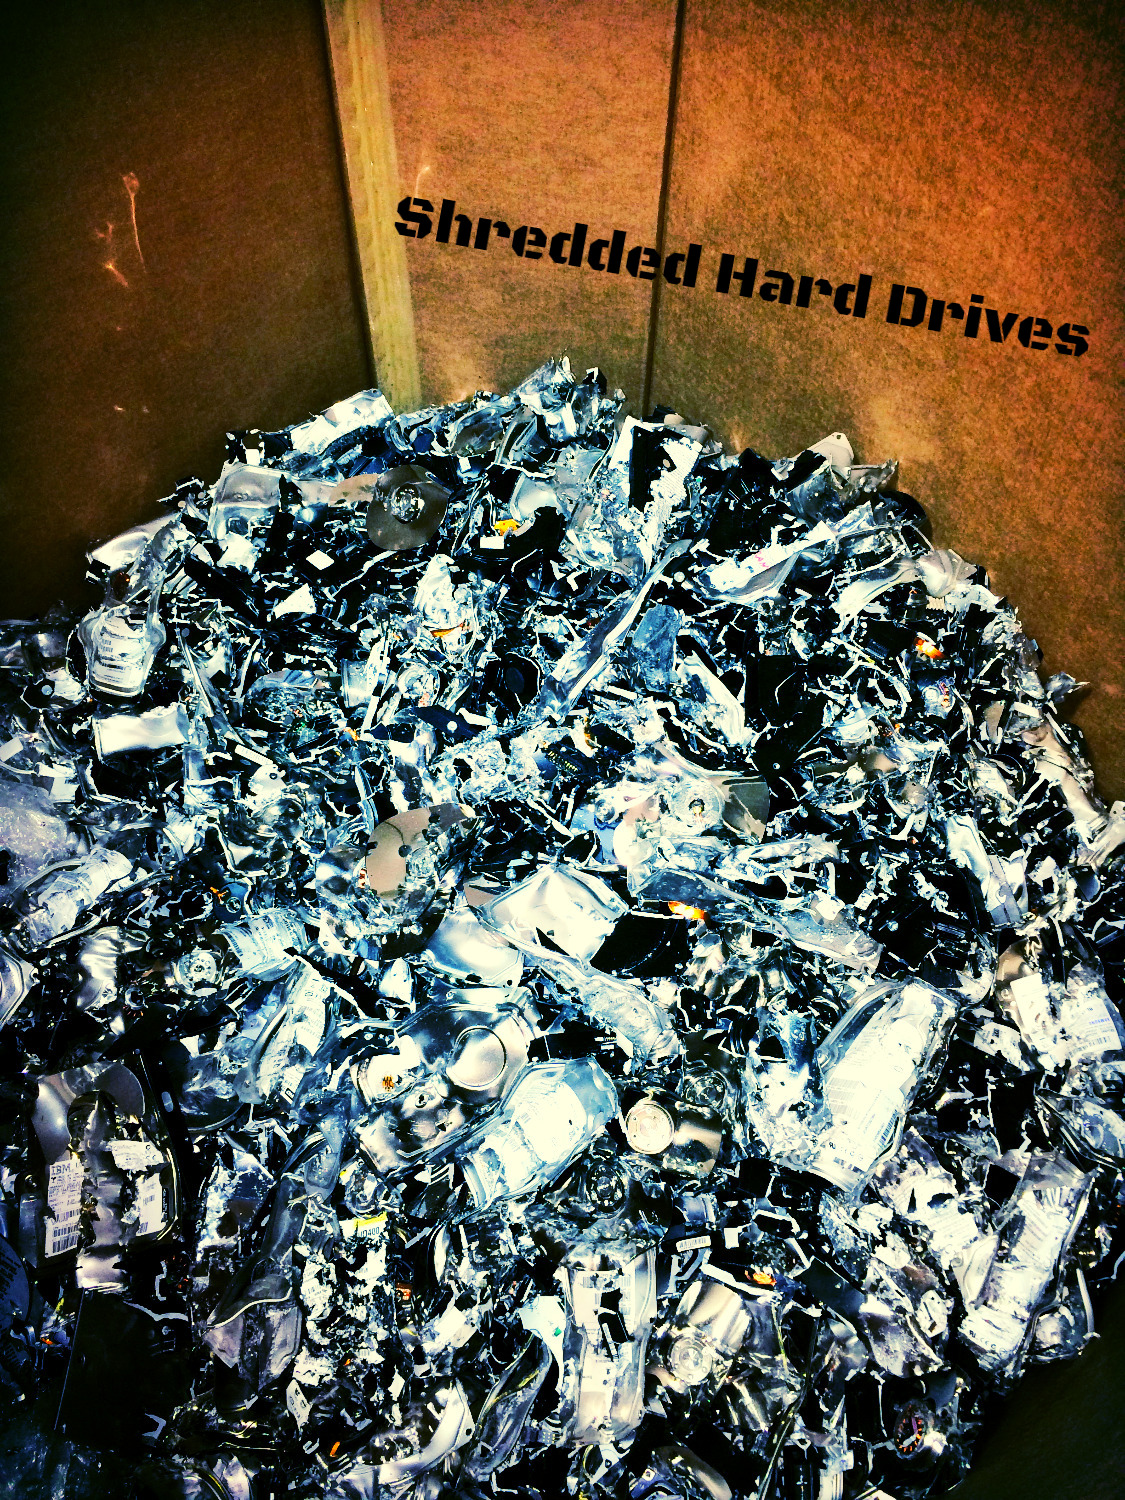 Shredded Hard Drives